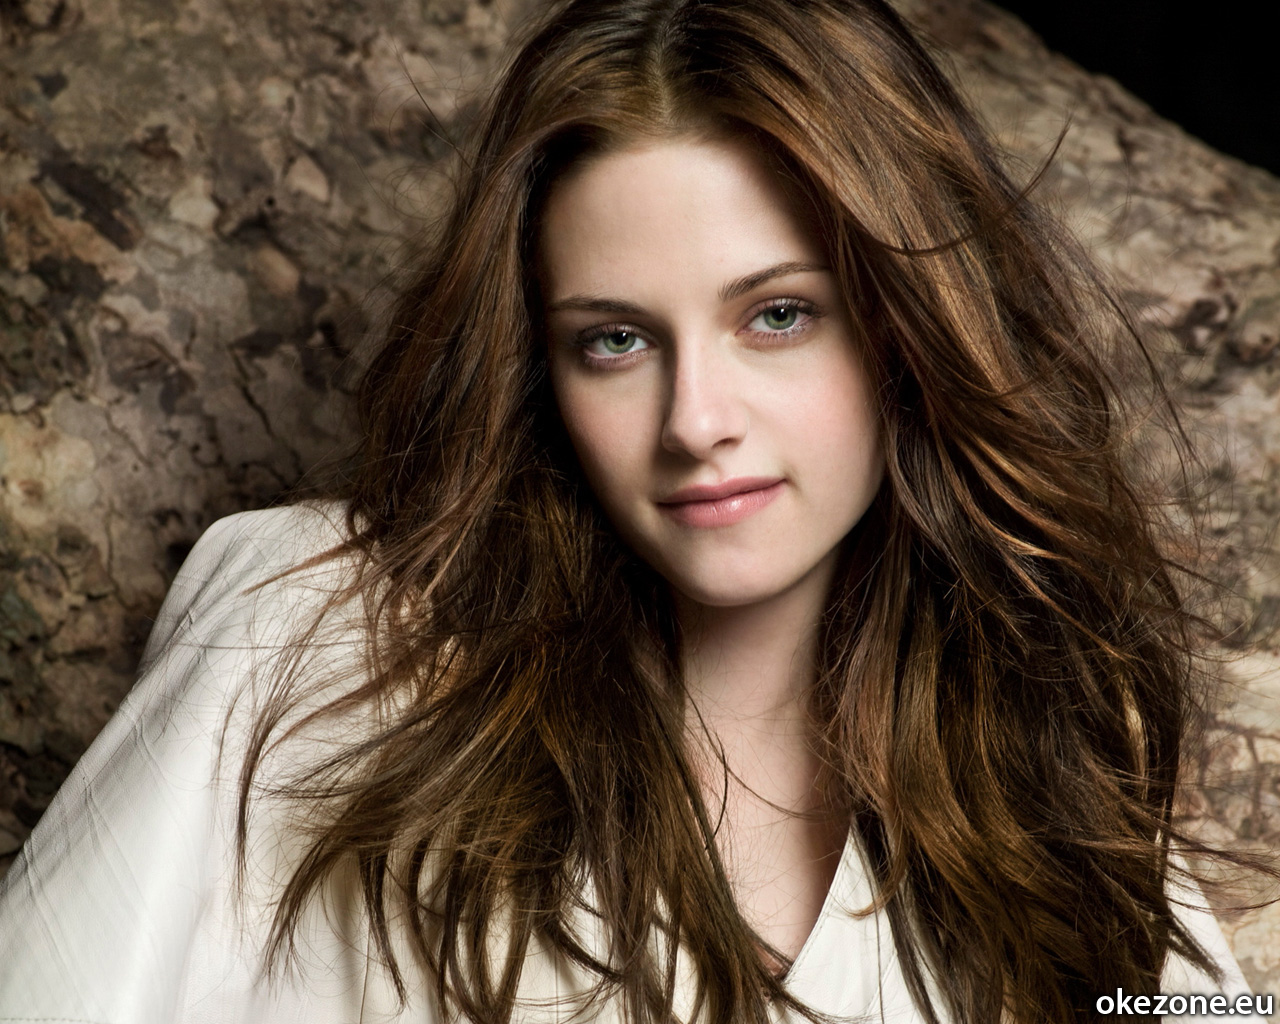 Sexy spicy kristen stewart wallpaper pack oke photo posted 25th may 2011 by okezone stopboris Images